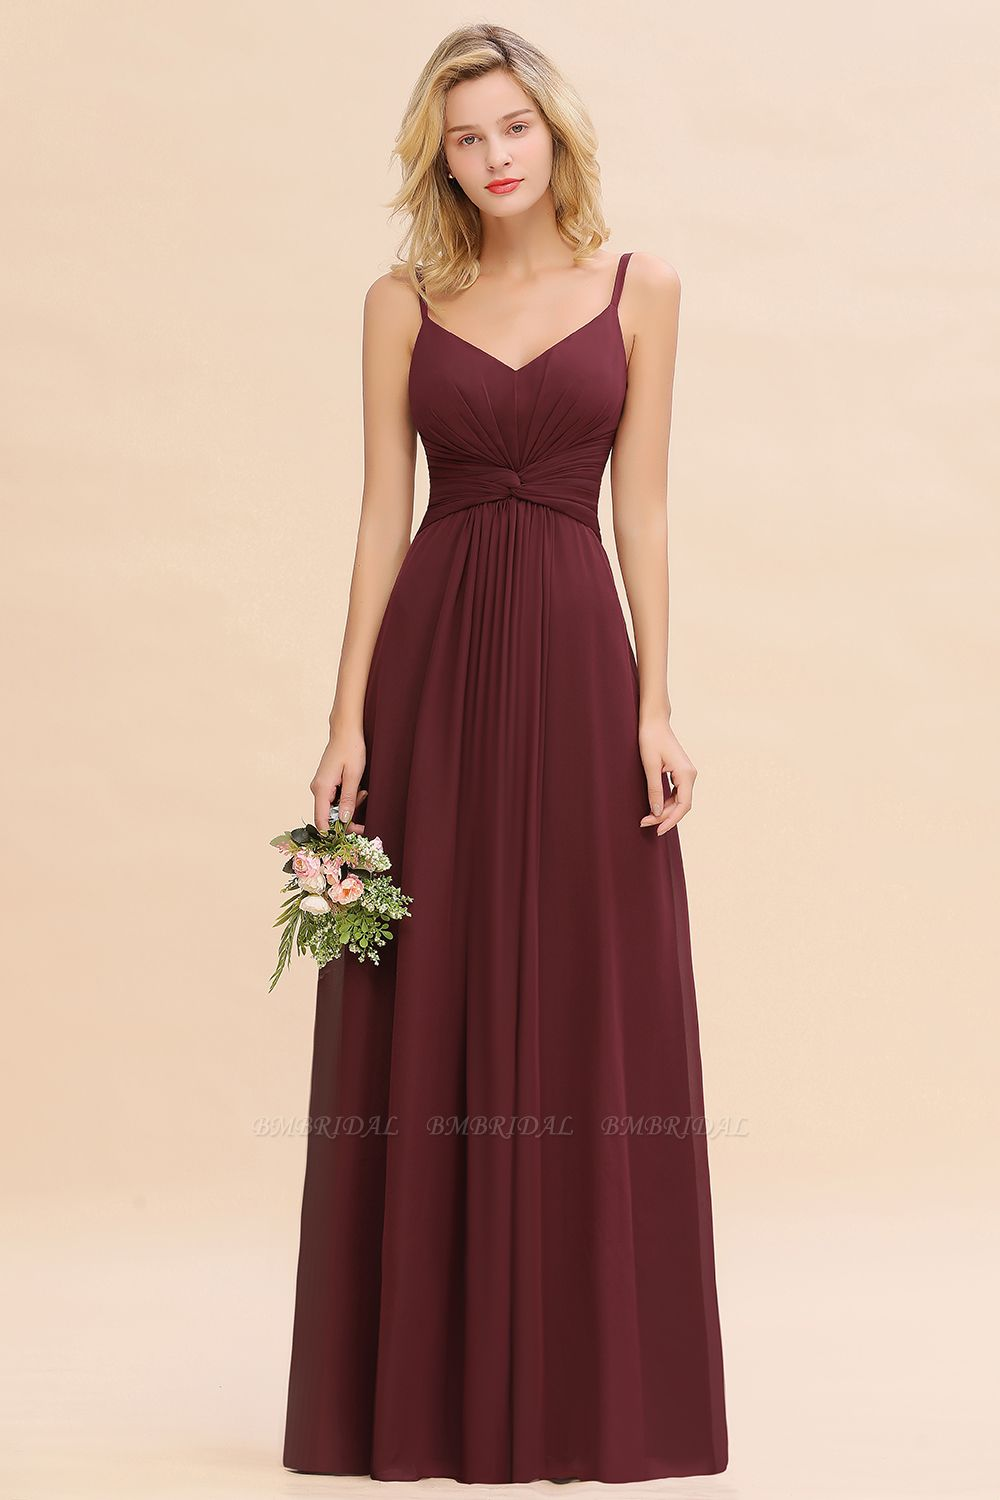 Spaghetti Straps Long Bridesmaid Dress